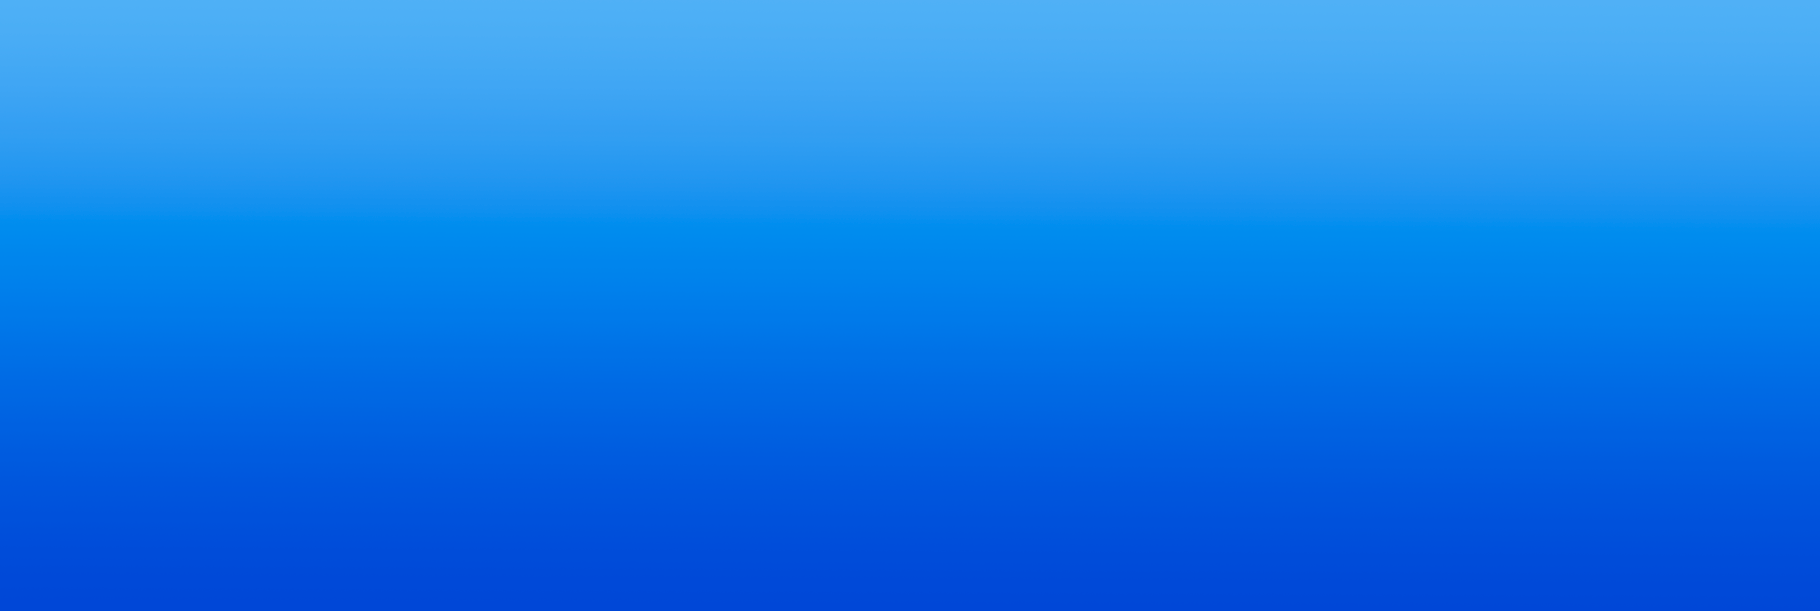 Blue Gradient 1.png